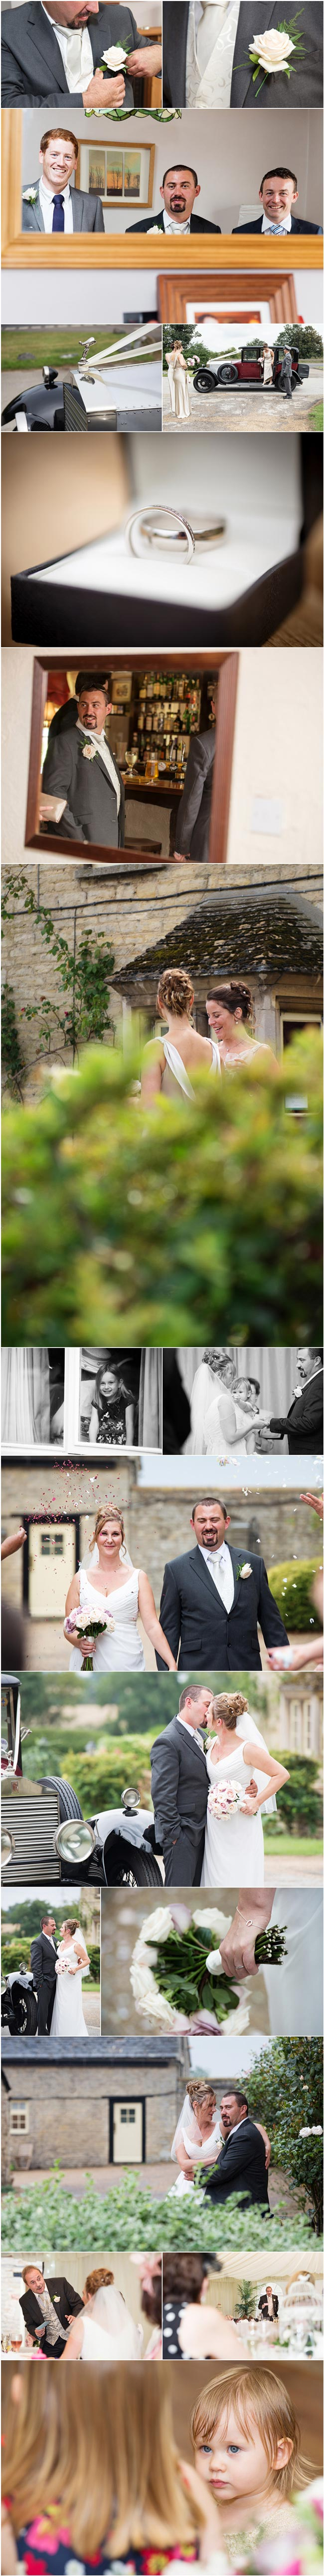 Contrejour photography-wedding photography